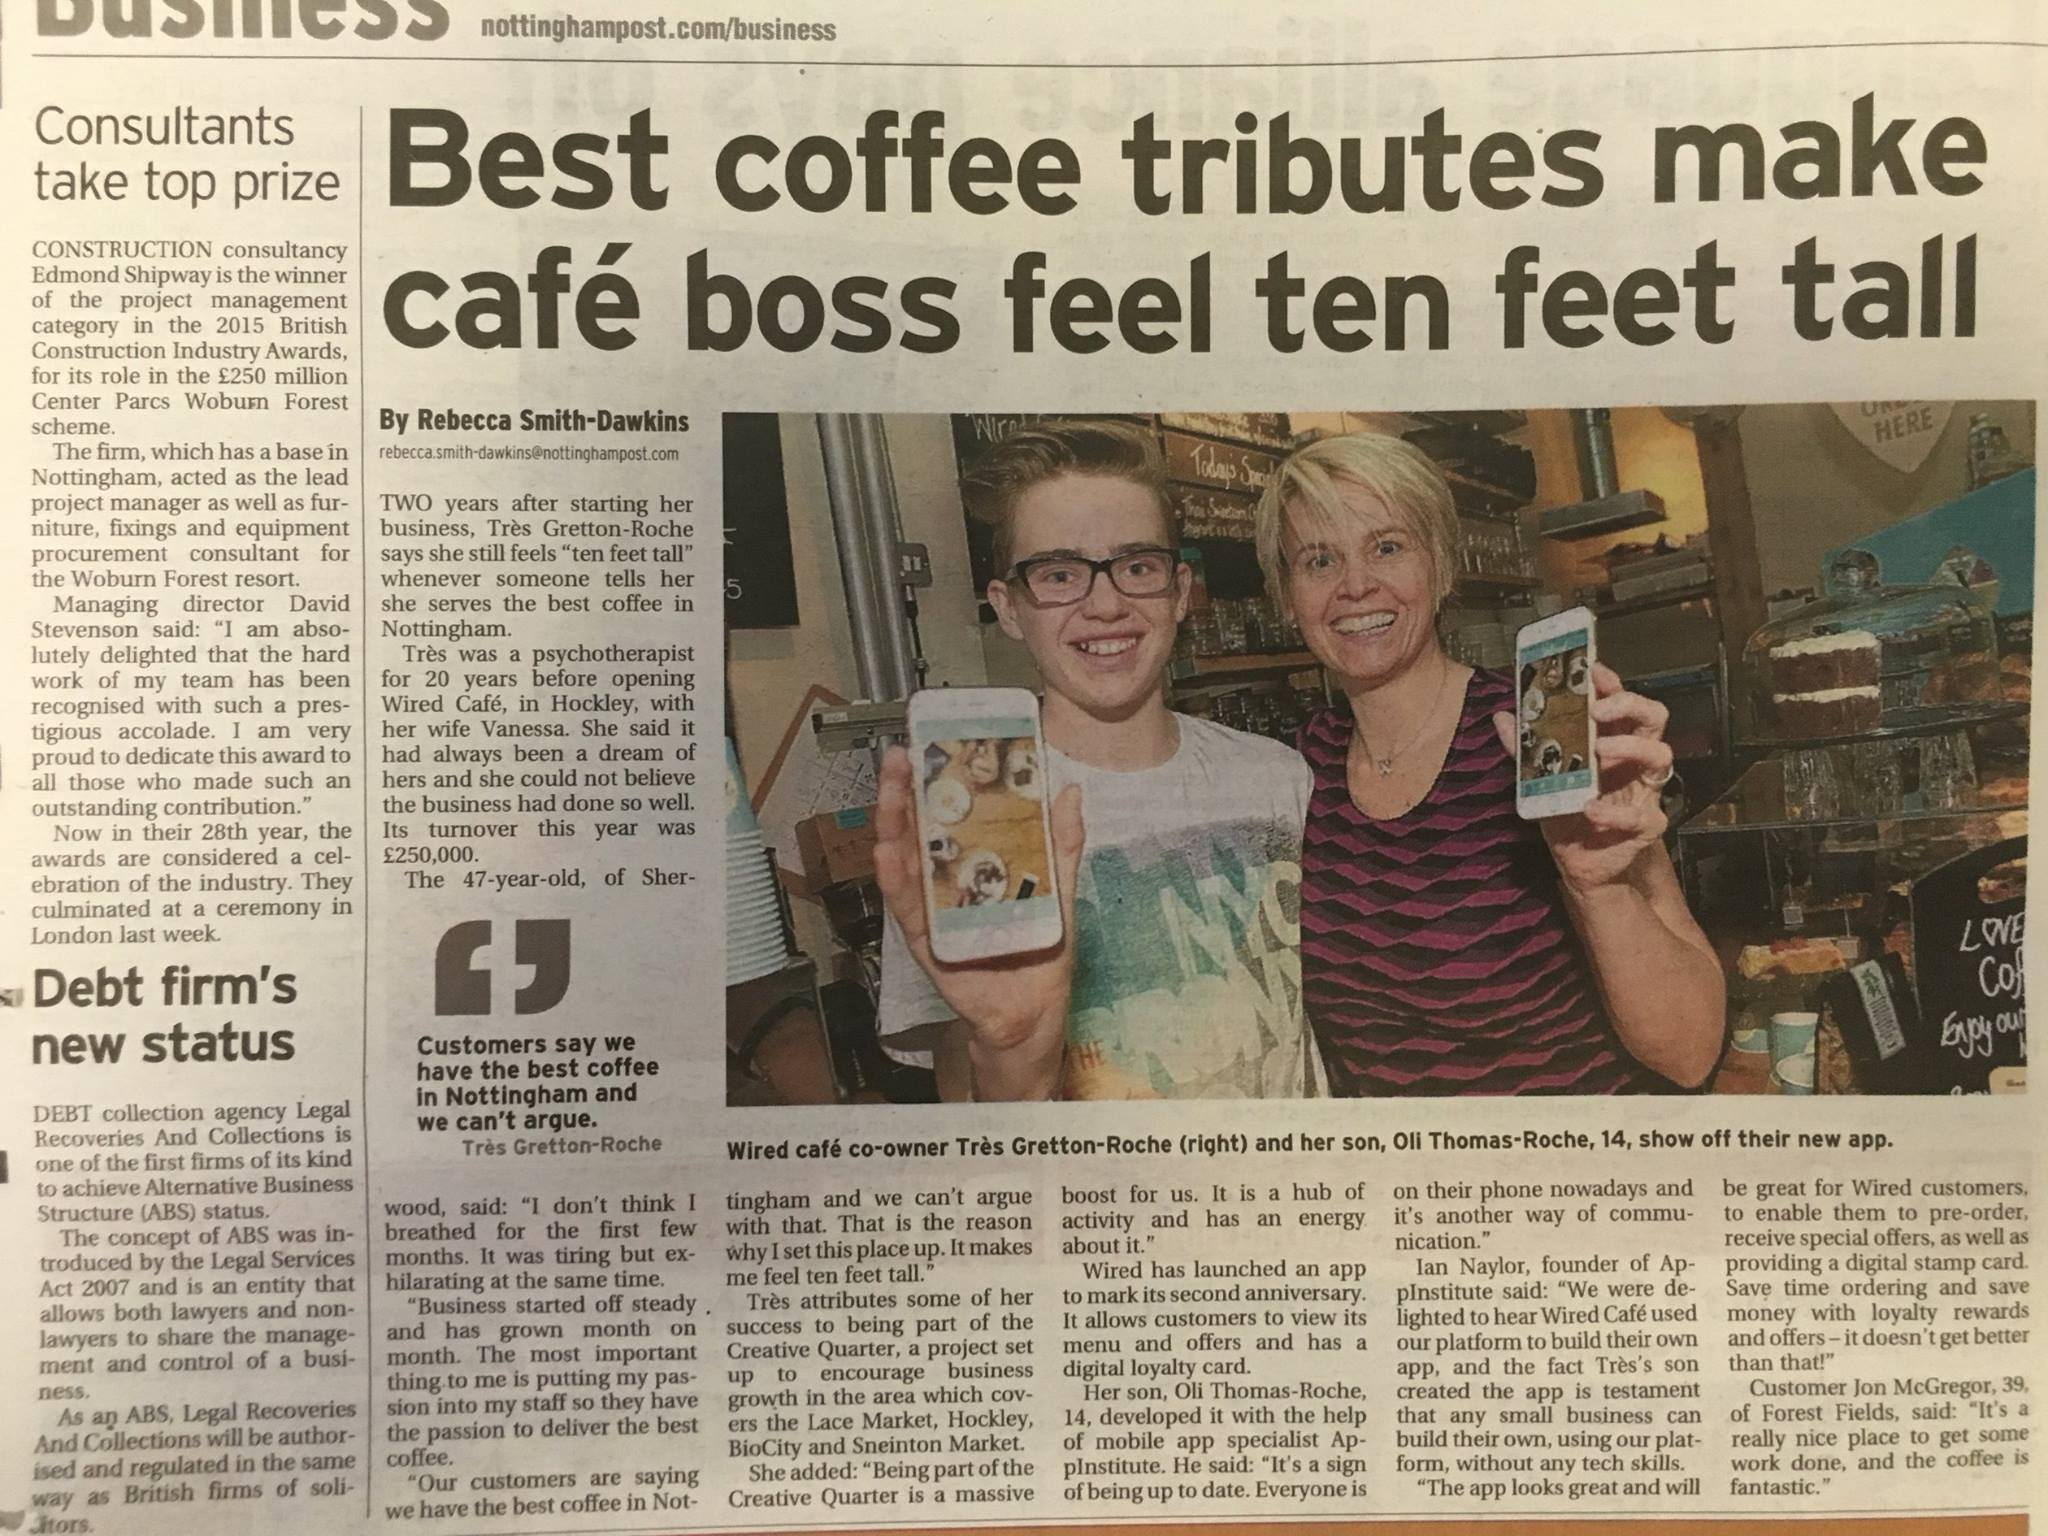 Best Coffee Tributes Make Cafe Boss Feel Ten Feet Tall